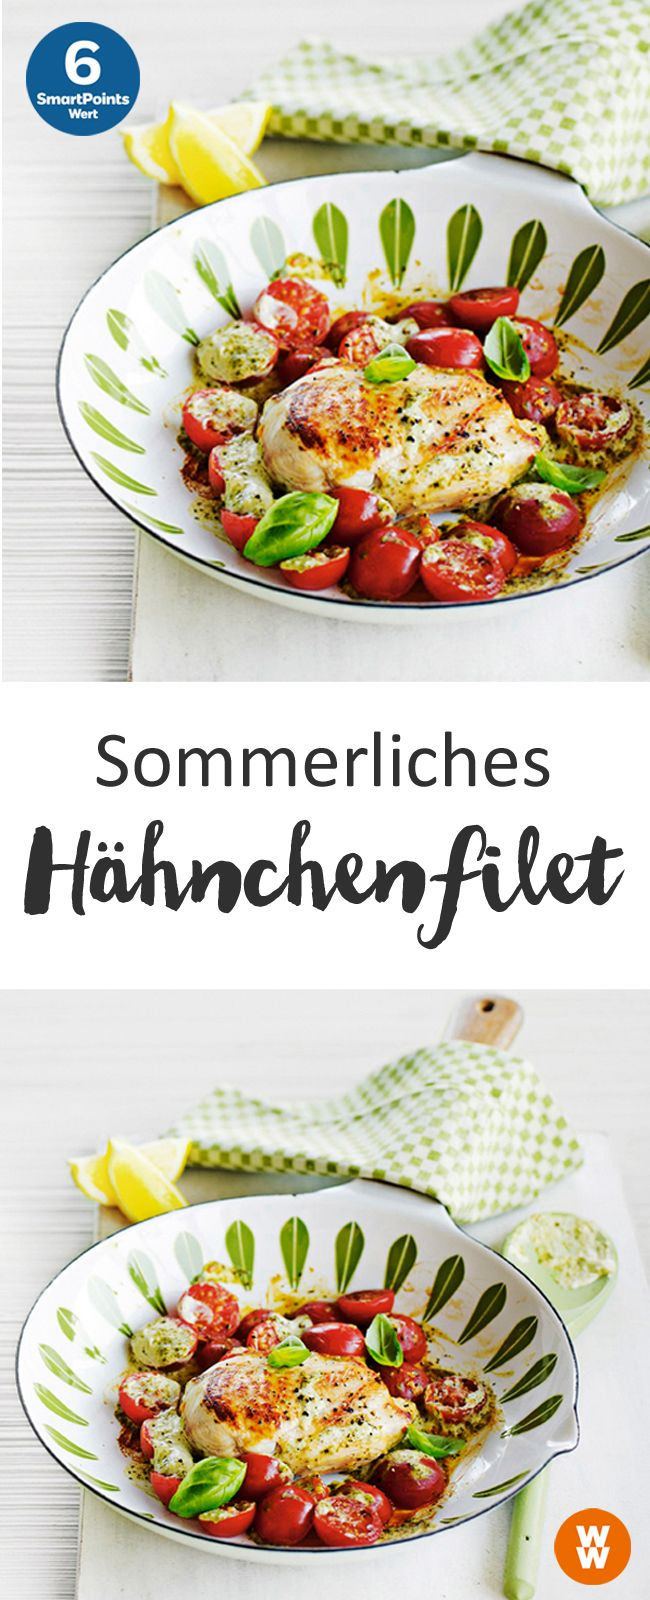 Sommerliches Hähnchenfilet | 6 SmartPoints/Portion, Weight Watchers, Fleisch, f…